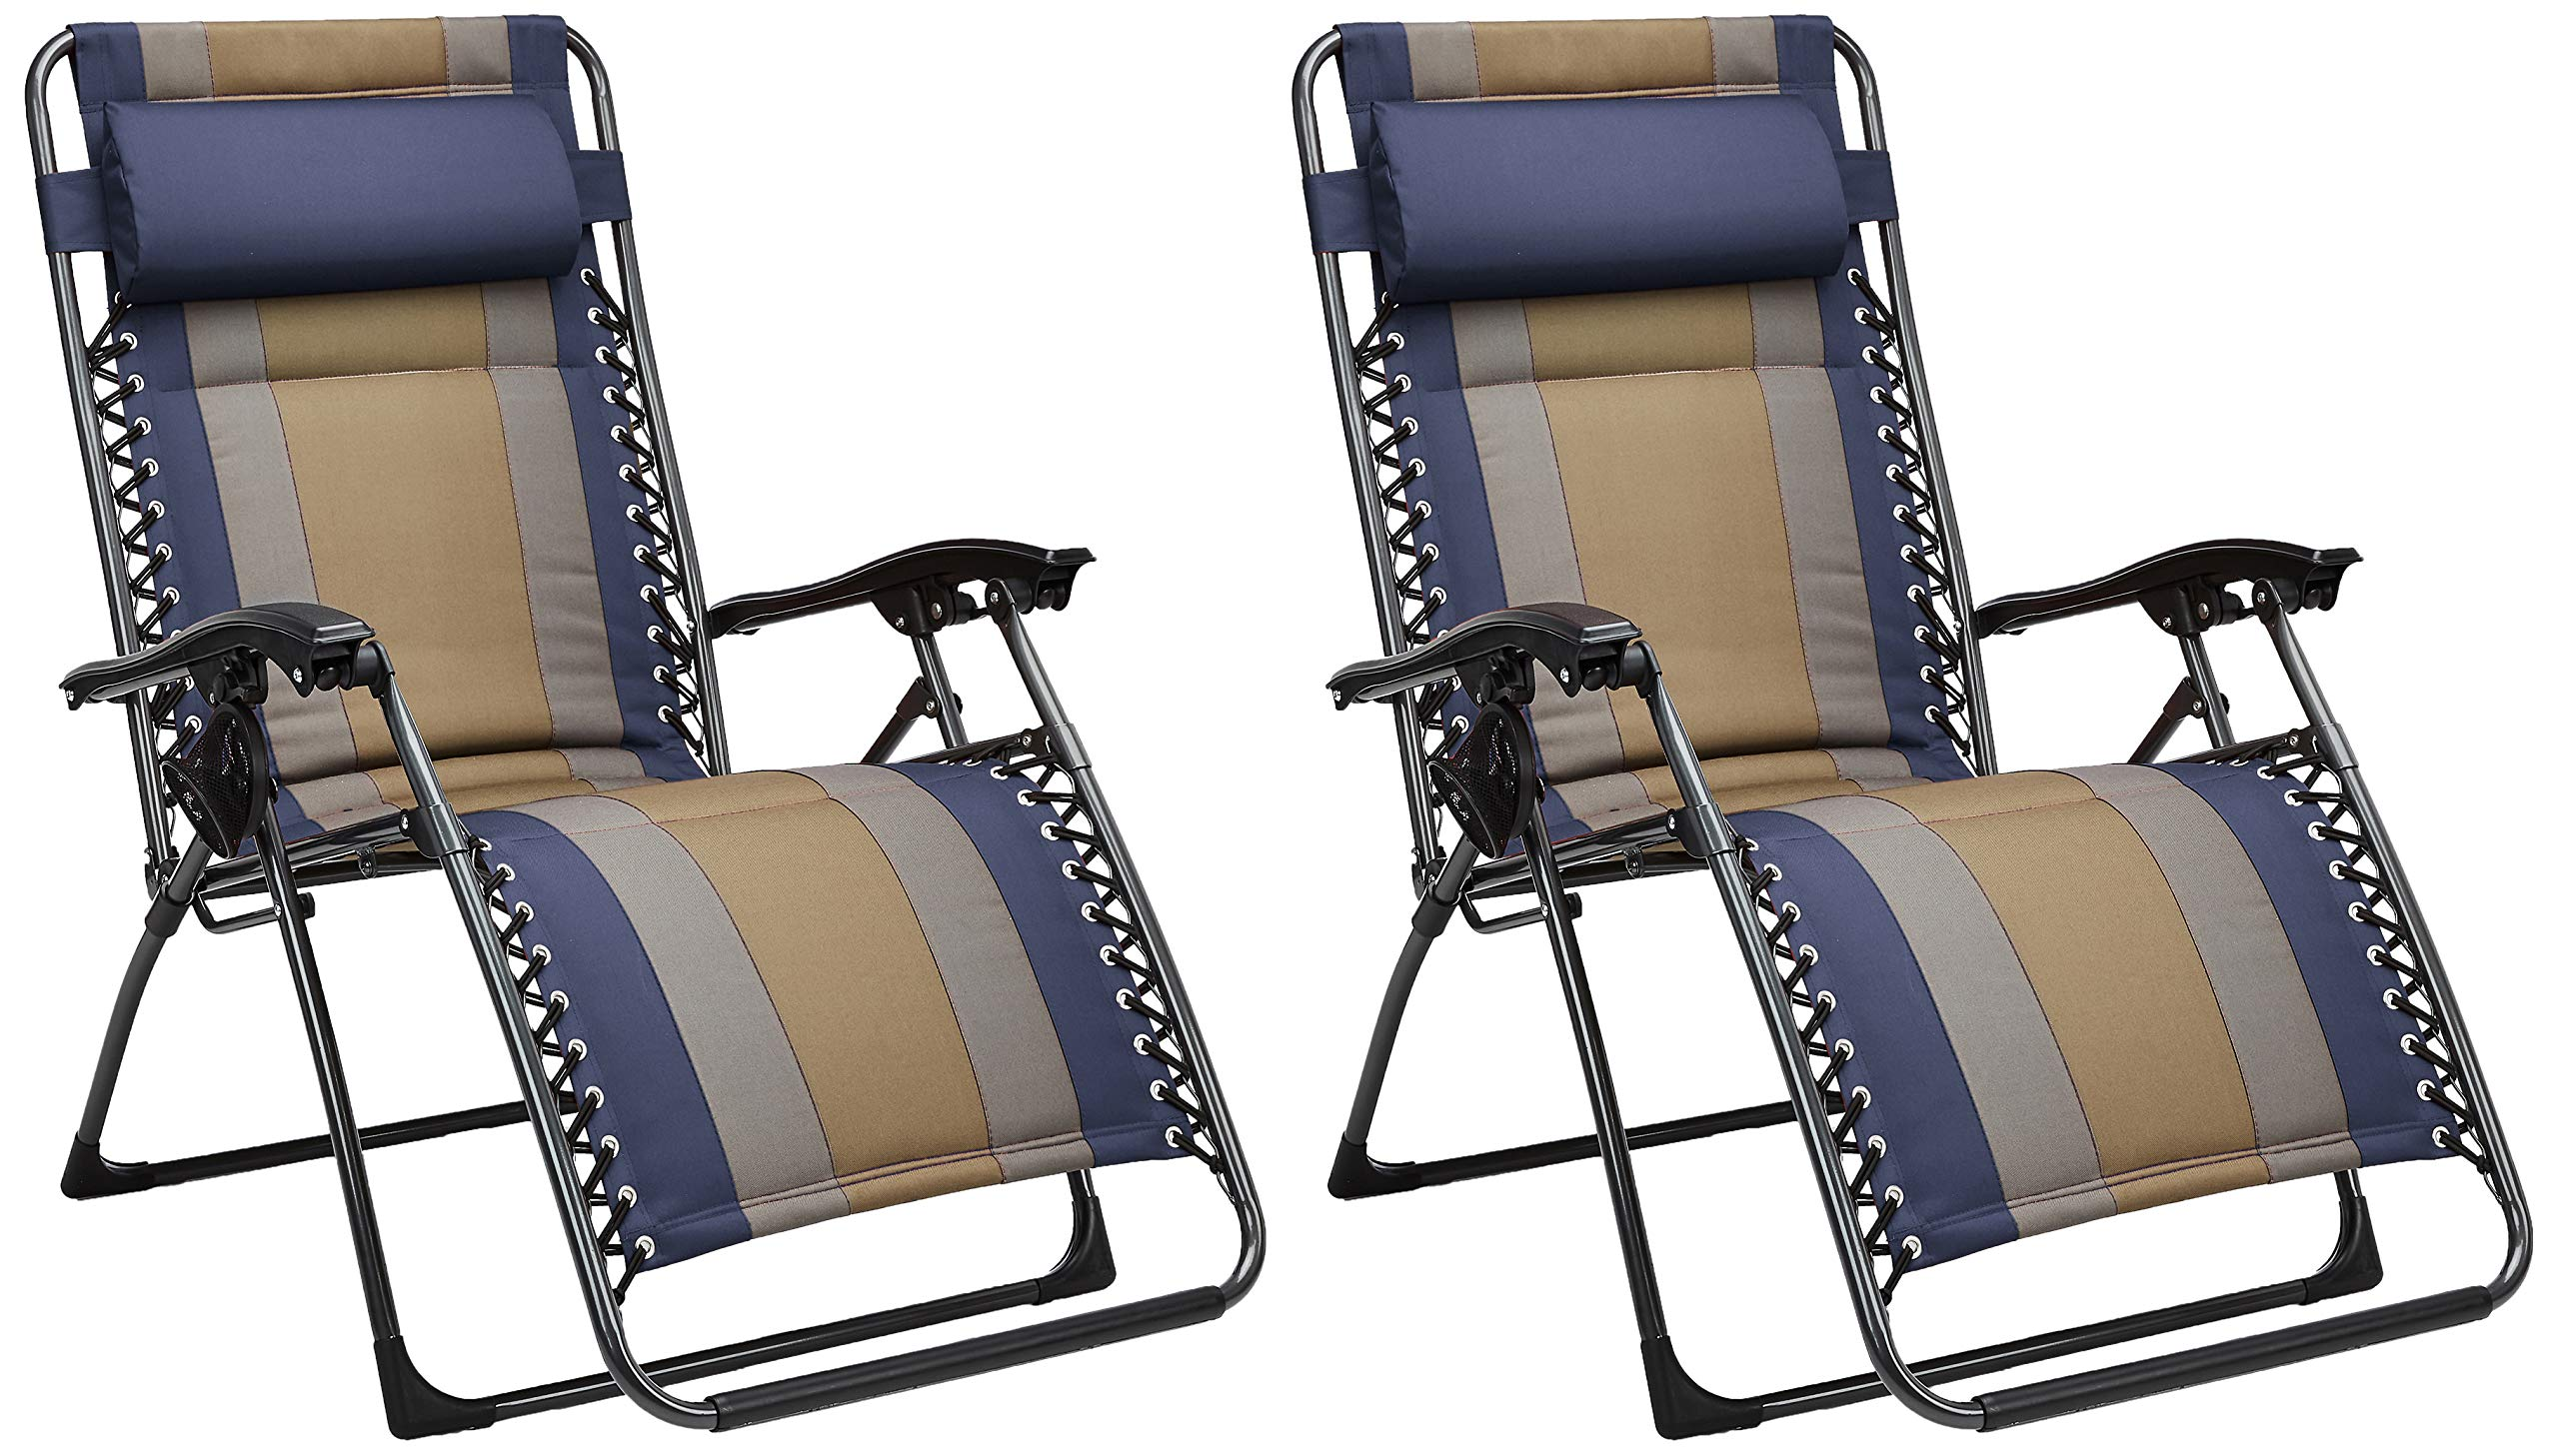 AmazonBasics Padded Zero Gravity Chair- Blue, 2 Pack by AmazonBasics